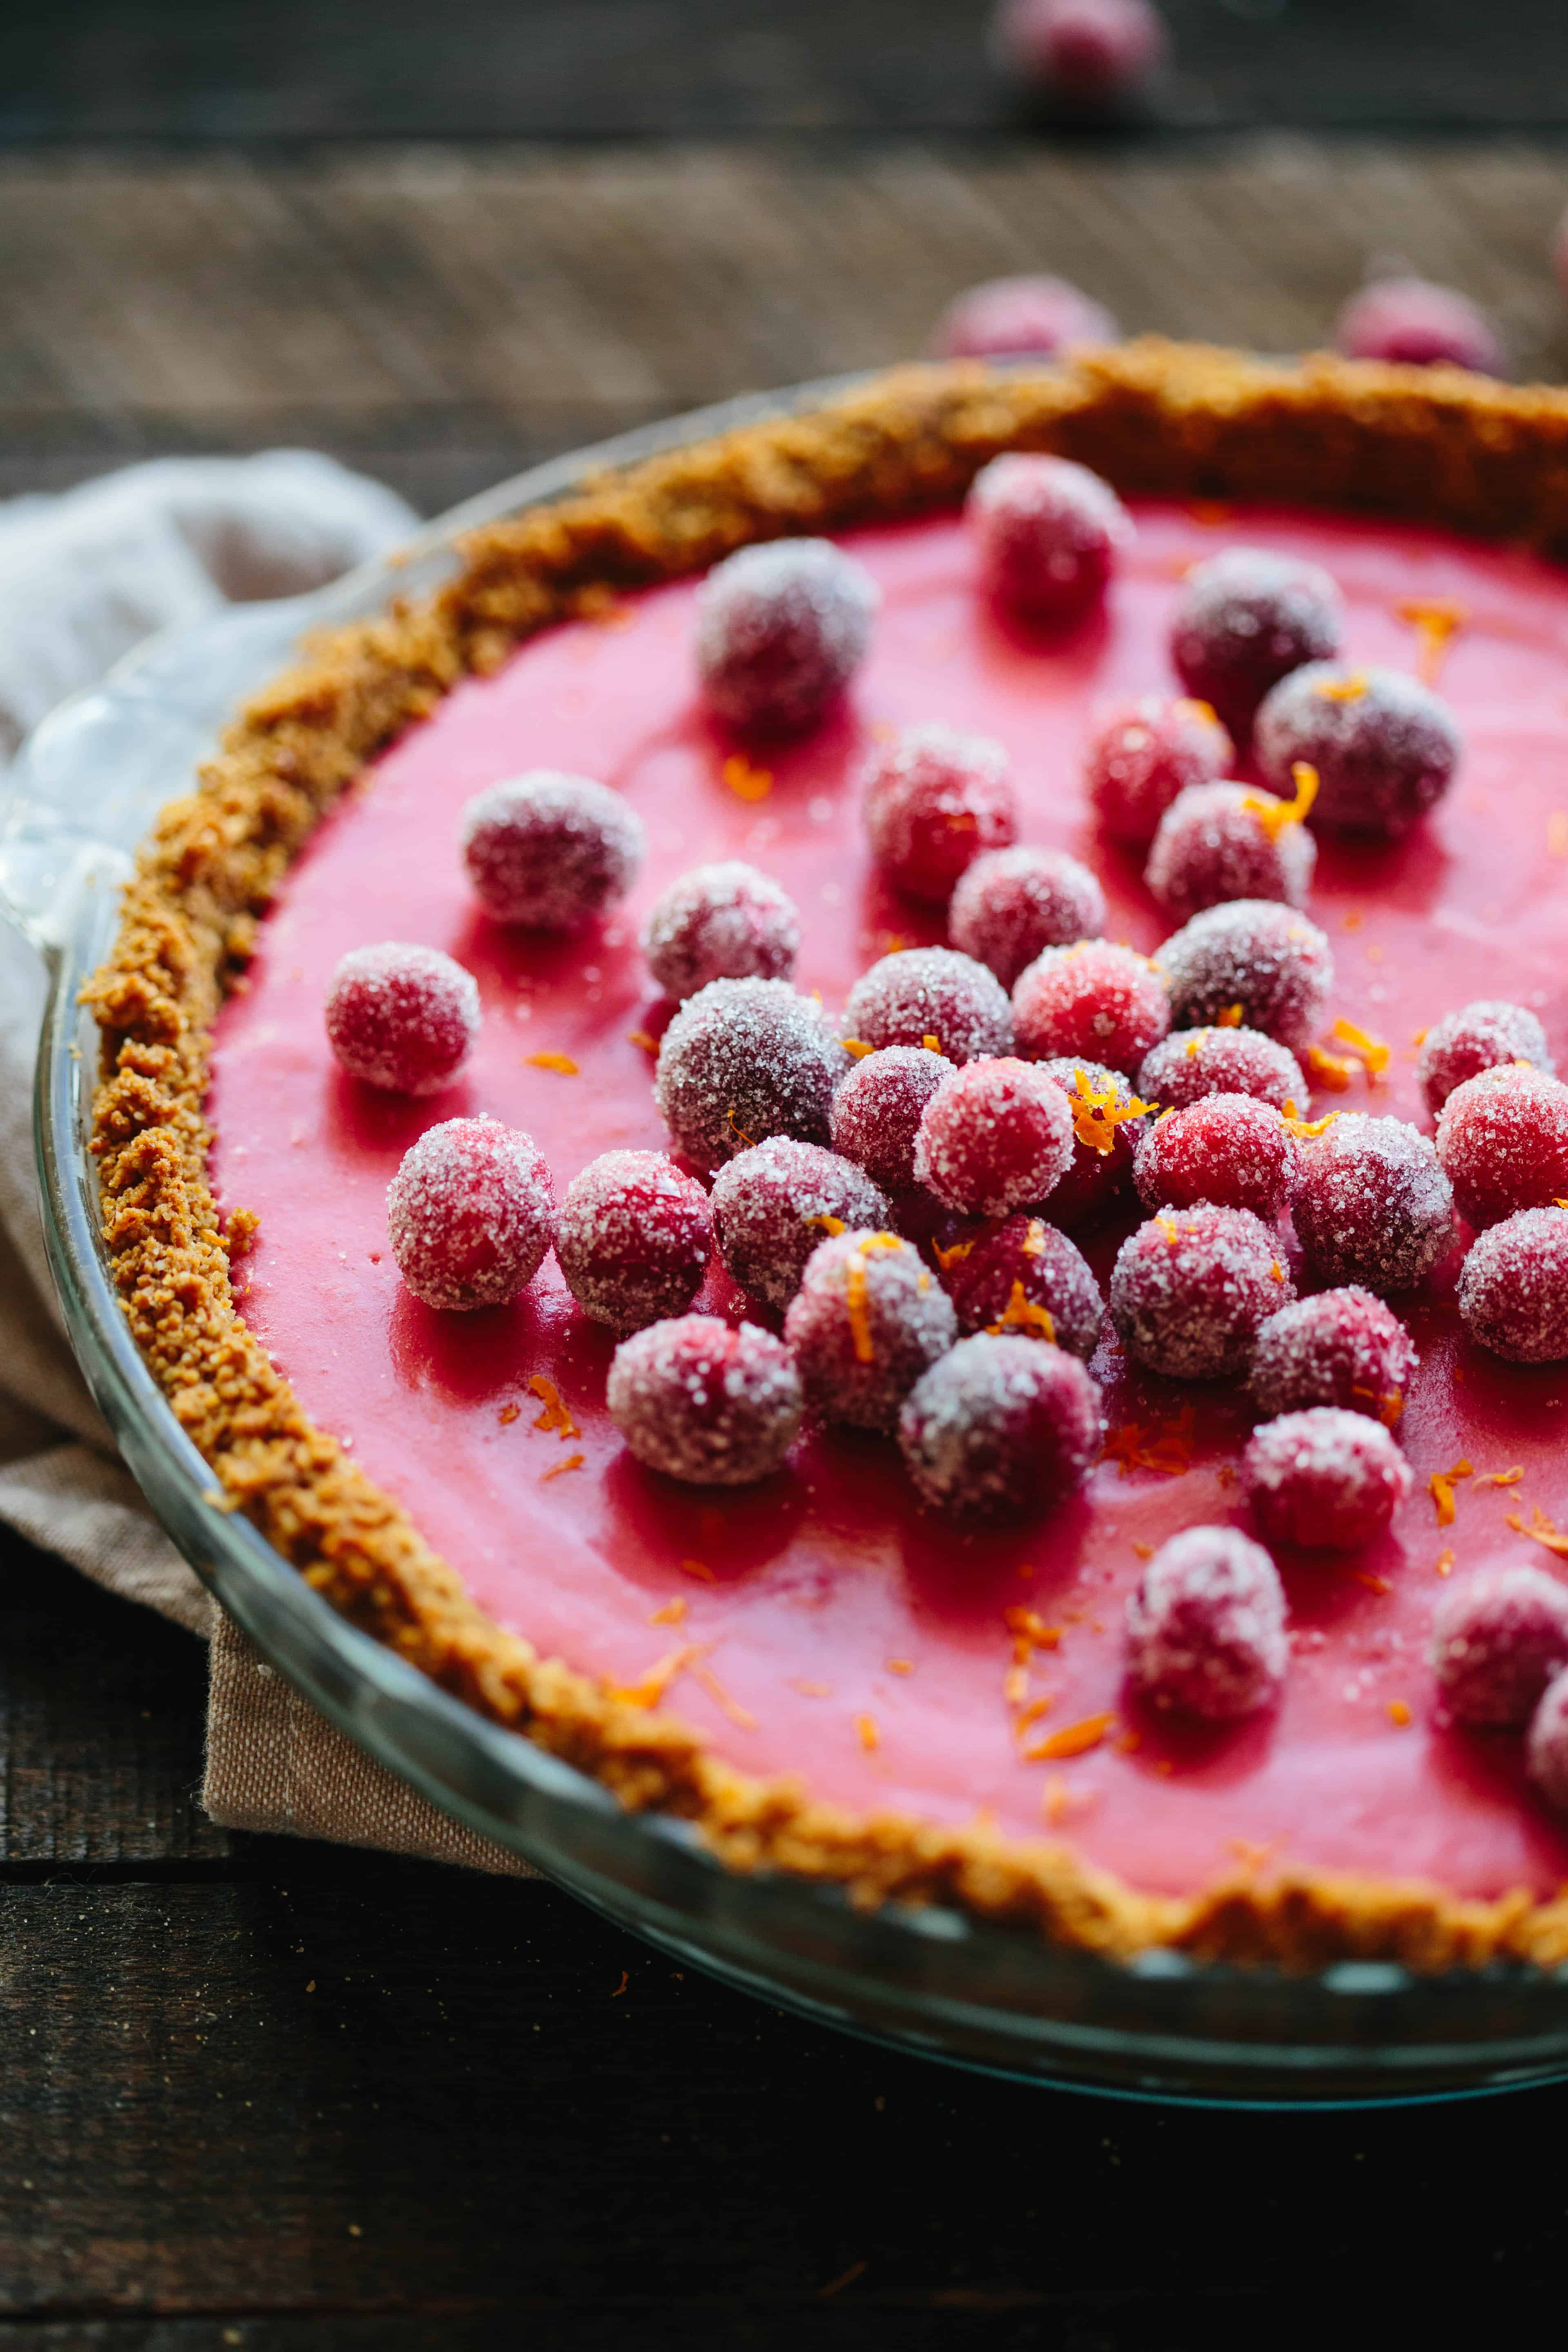 CRANBERRY MEYER LEMON PIE with gingersnap crust   Think key lime pie, but better. A beautiful and unique holiday dessert perfect for Thanksgiving! #Thanksgiving #entertaining #recipe #cranberry #meyerlemon #pie   ColeyCooks.com